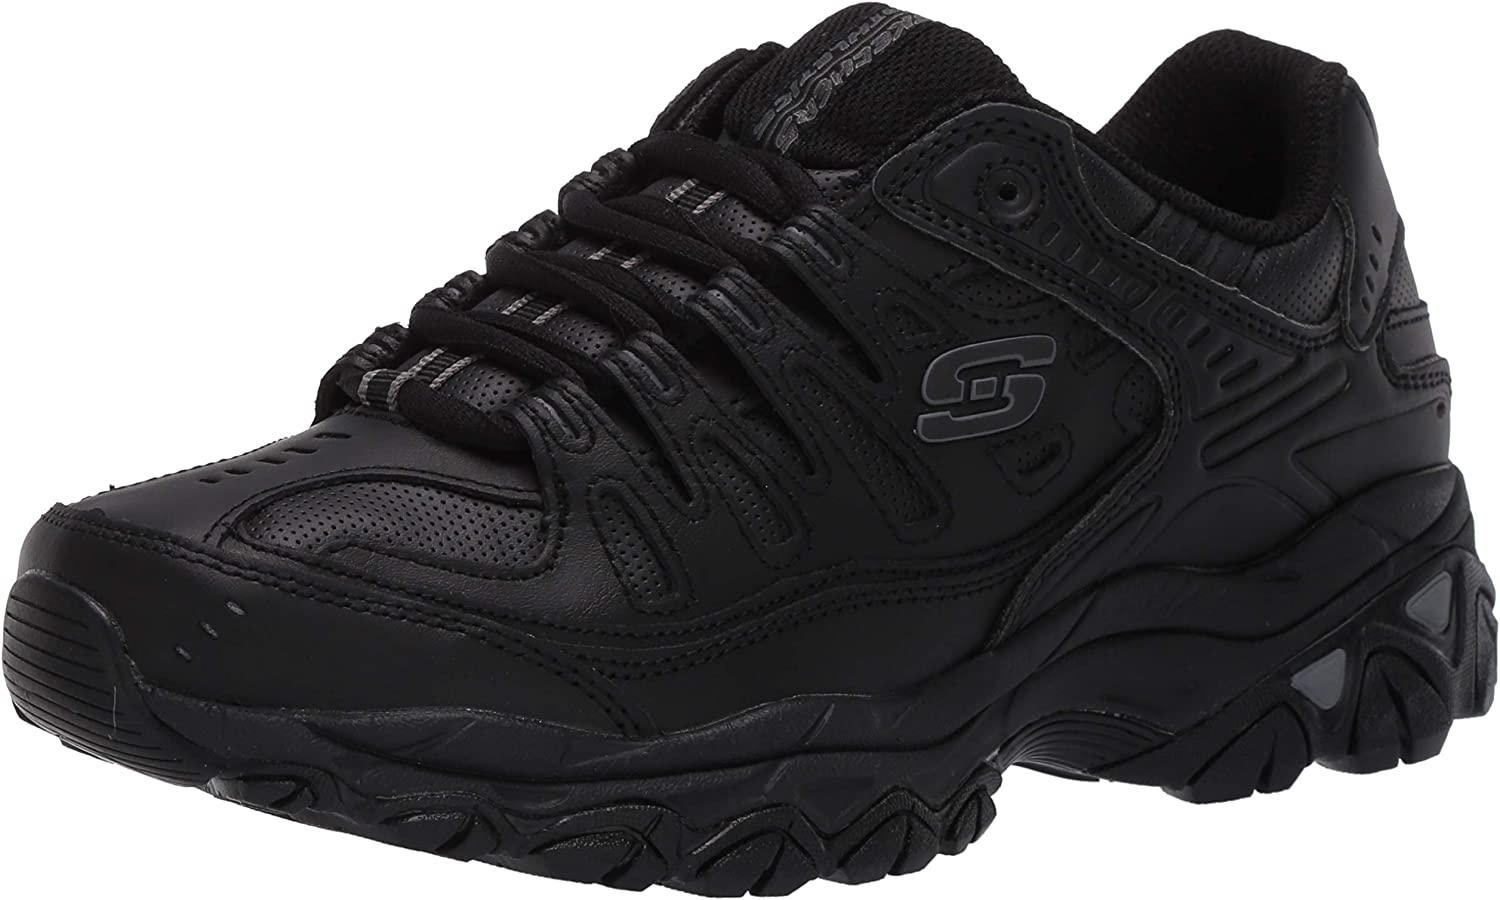 Skechers Sport Memory Foam Fit ristampa Lace up Sneaker